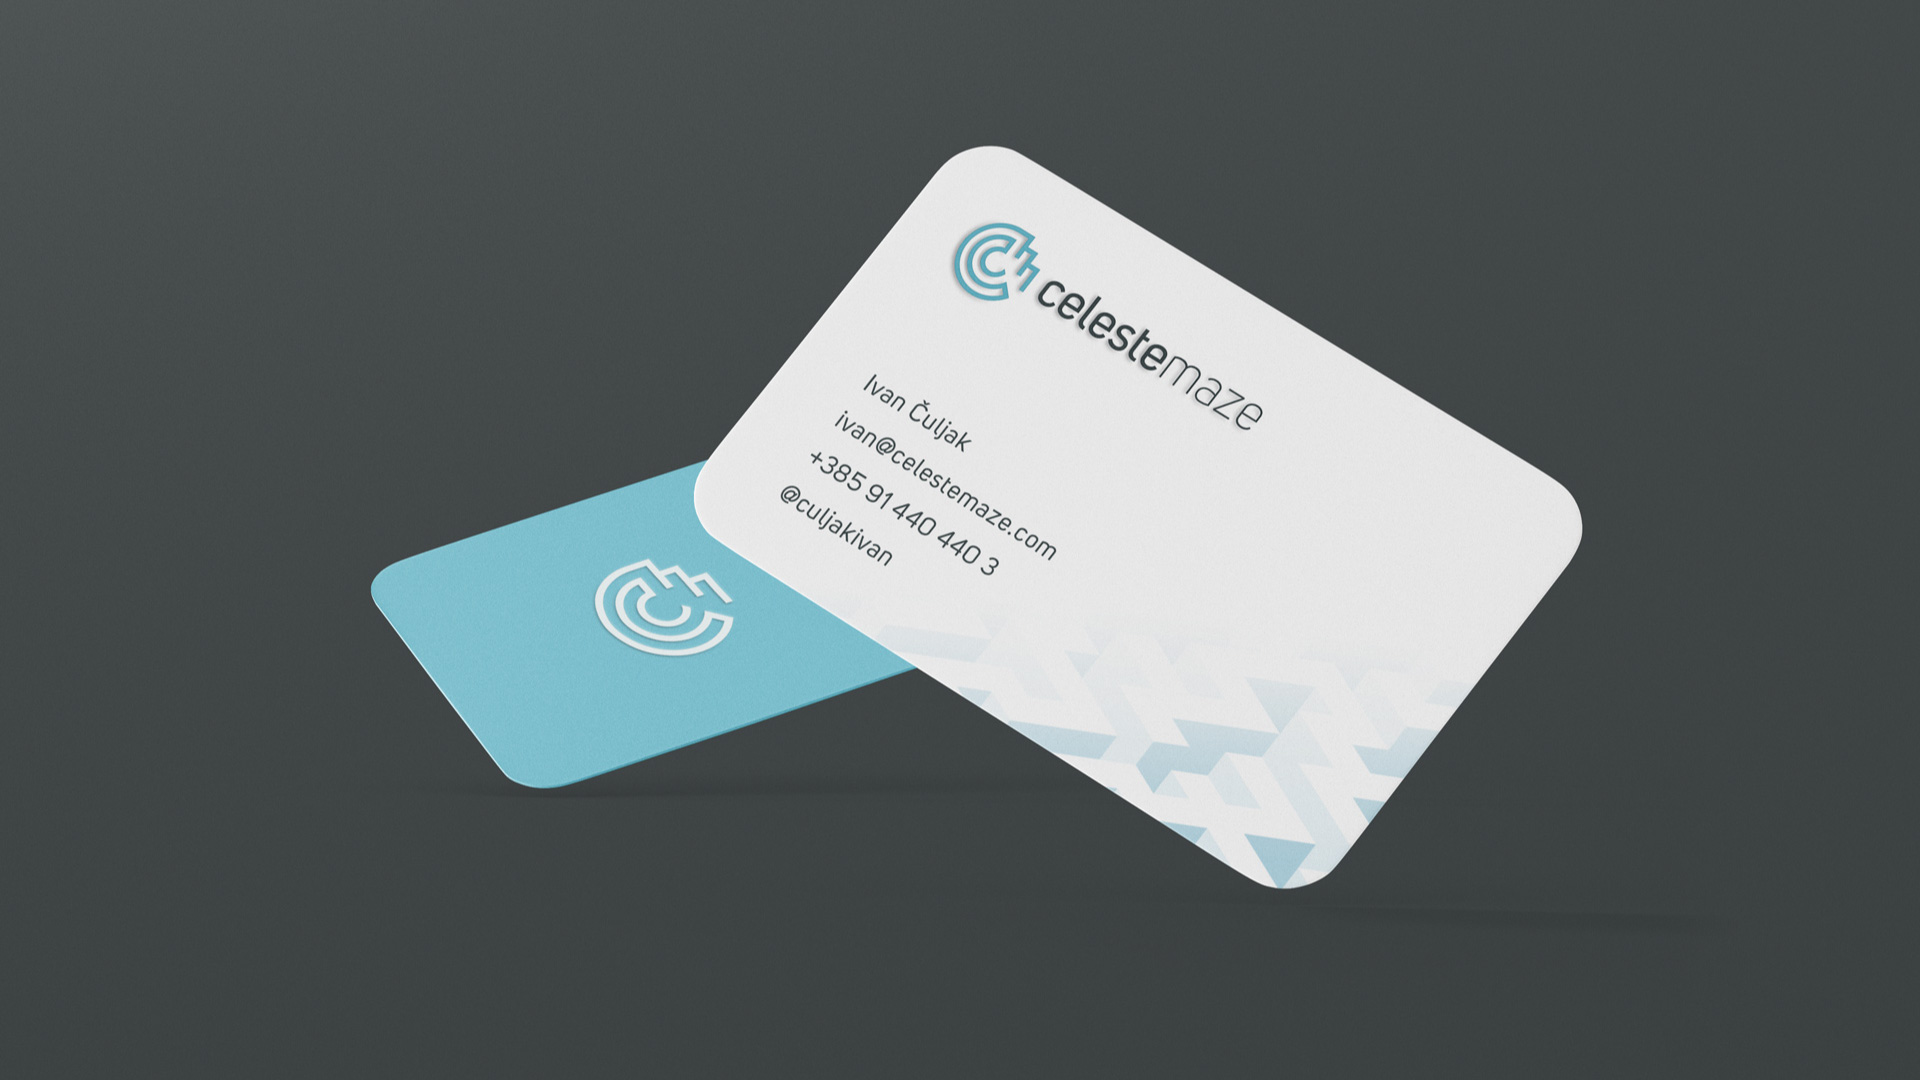 Celeste maze business cards